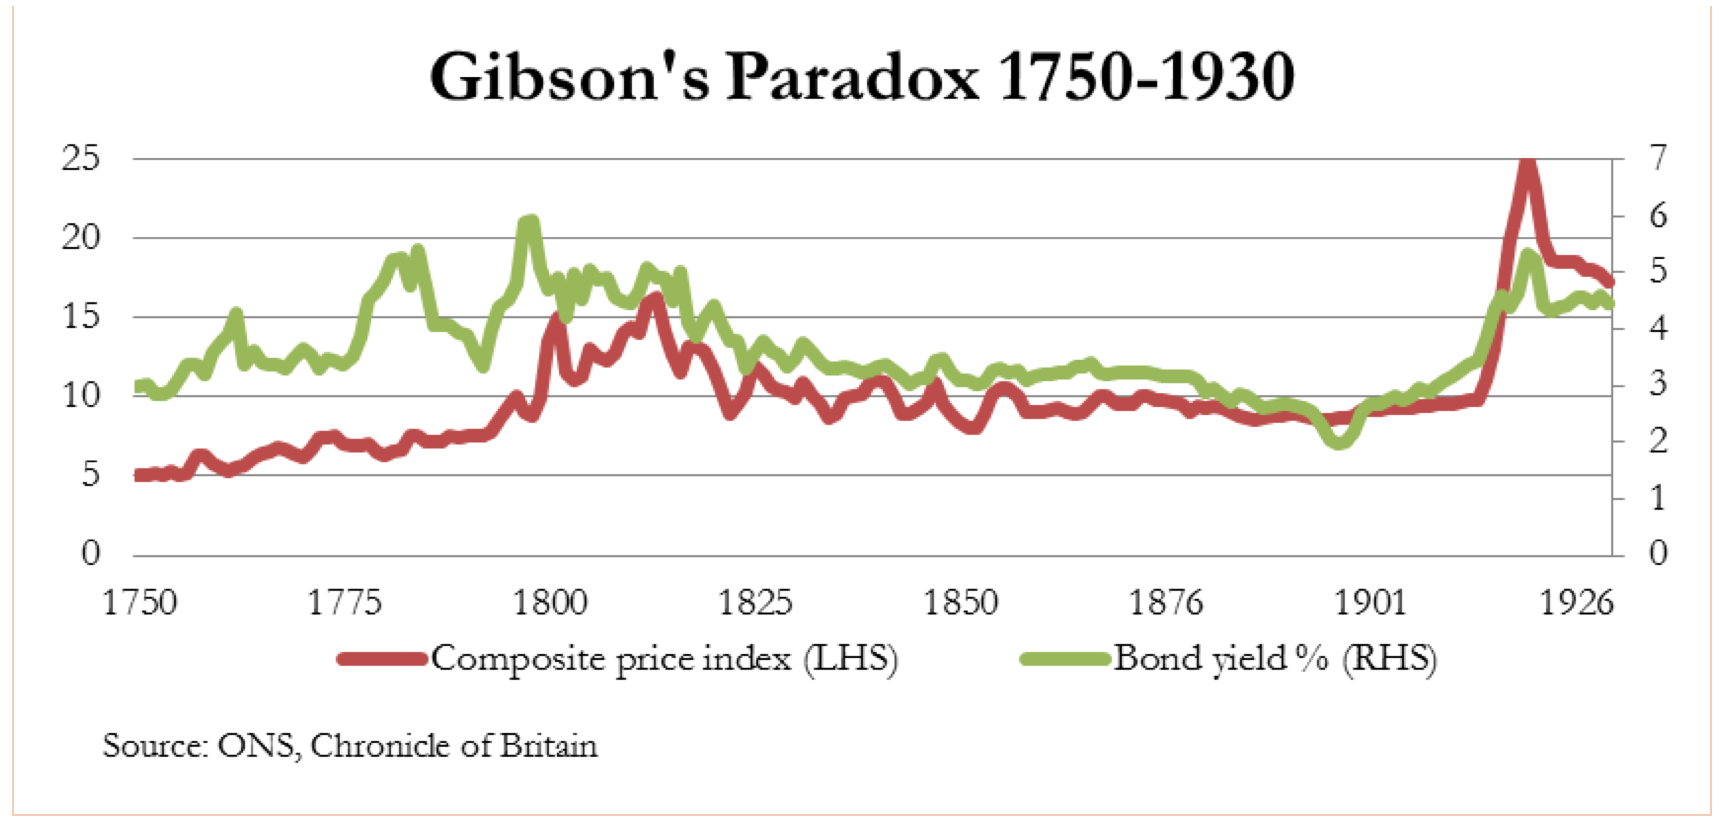 Further thoughts on Gibson's paradox